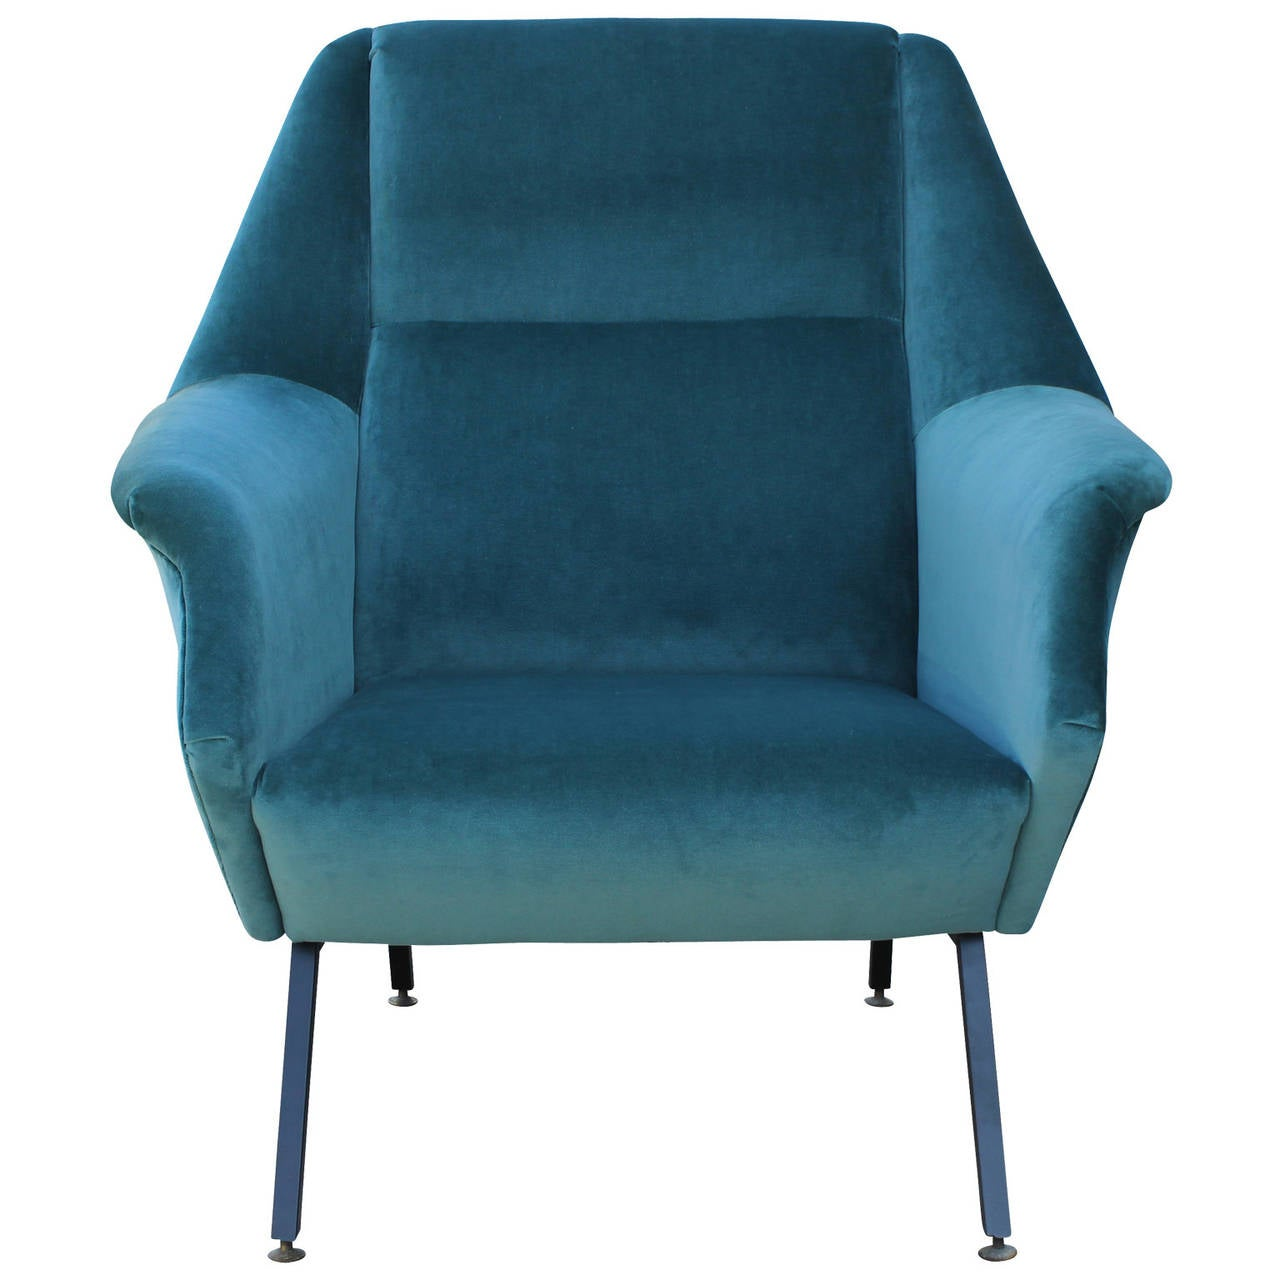 Teal Chair Images Reverse Search